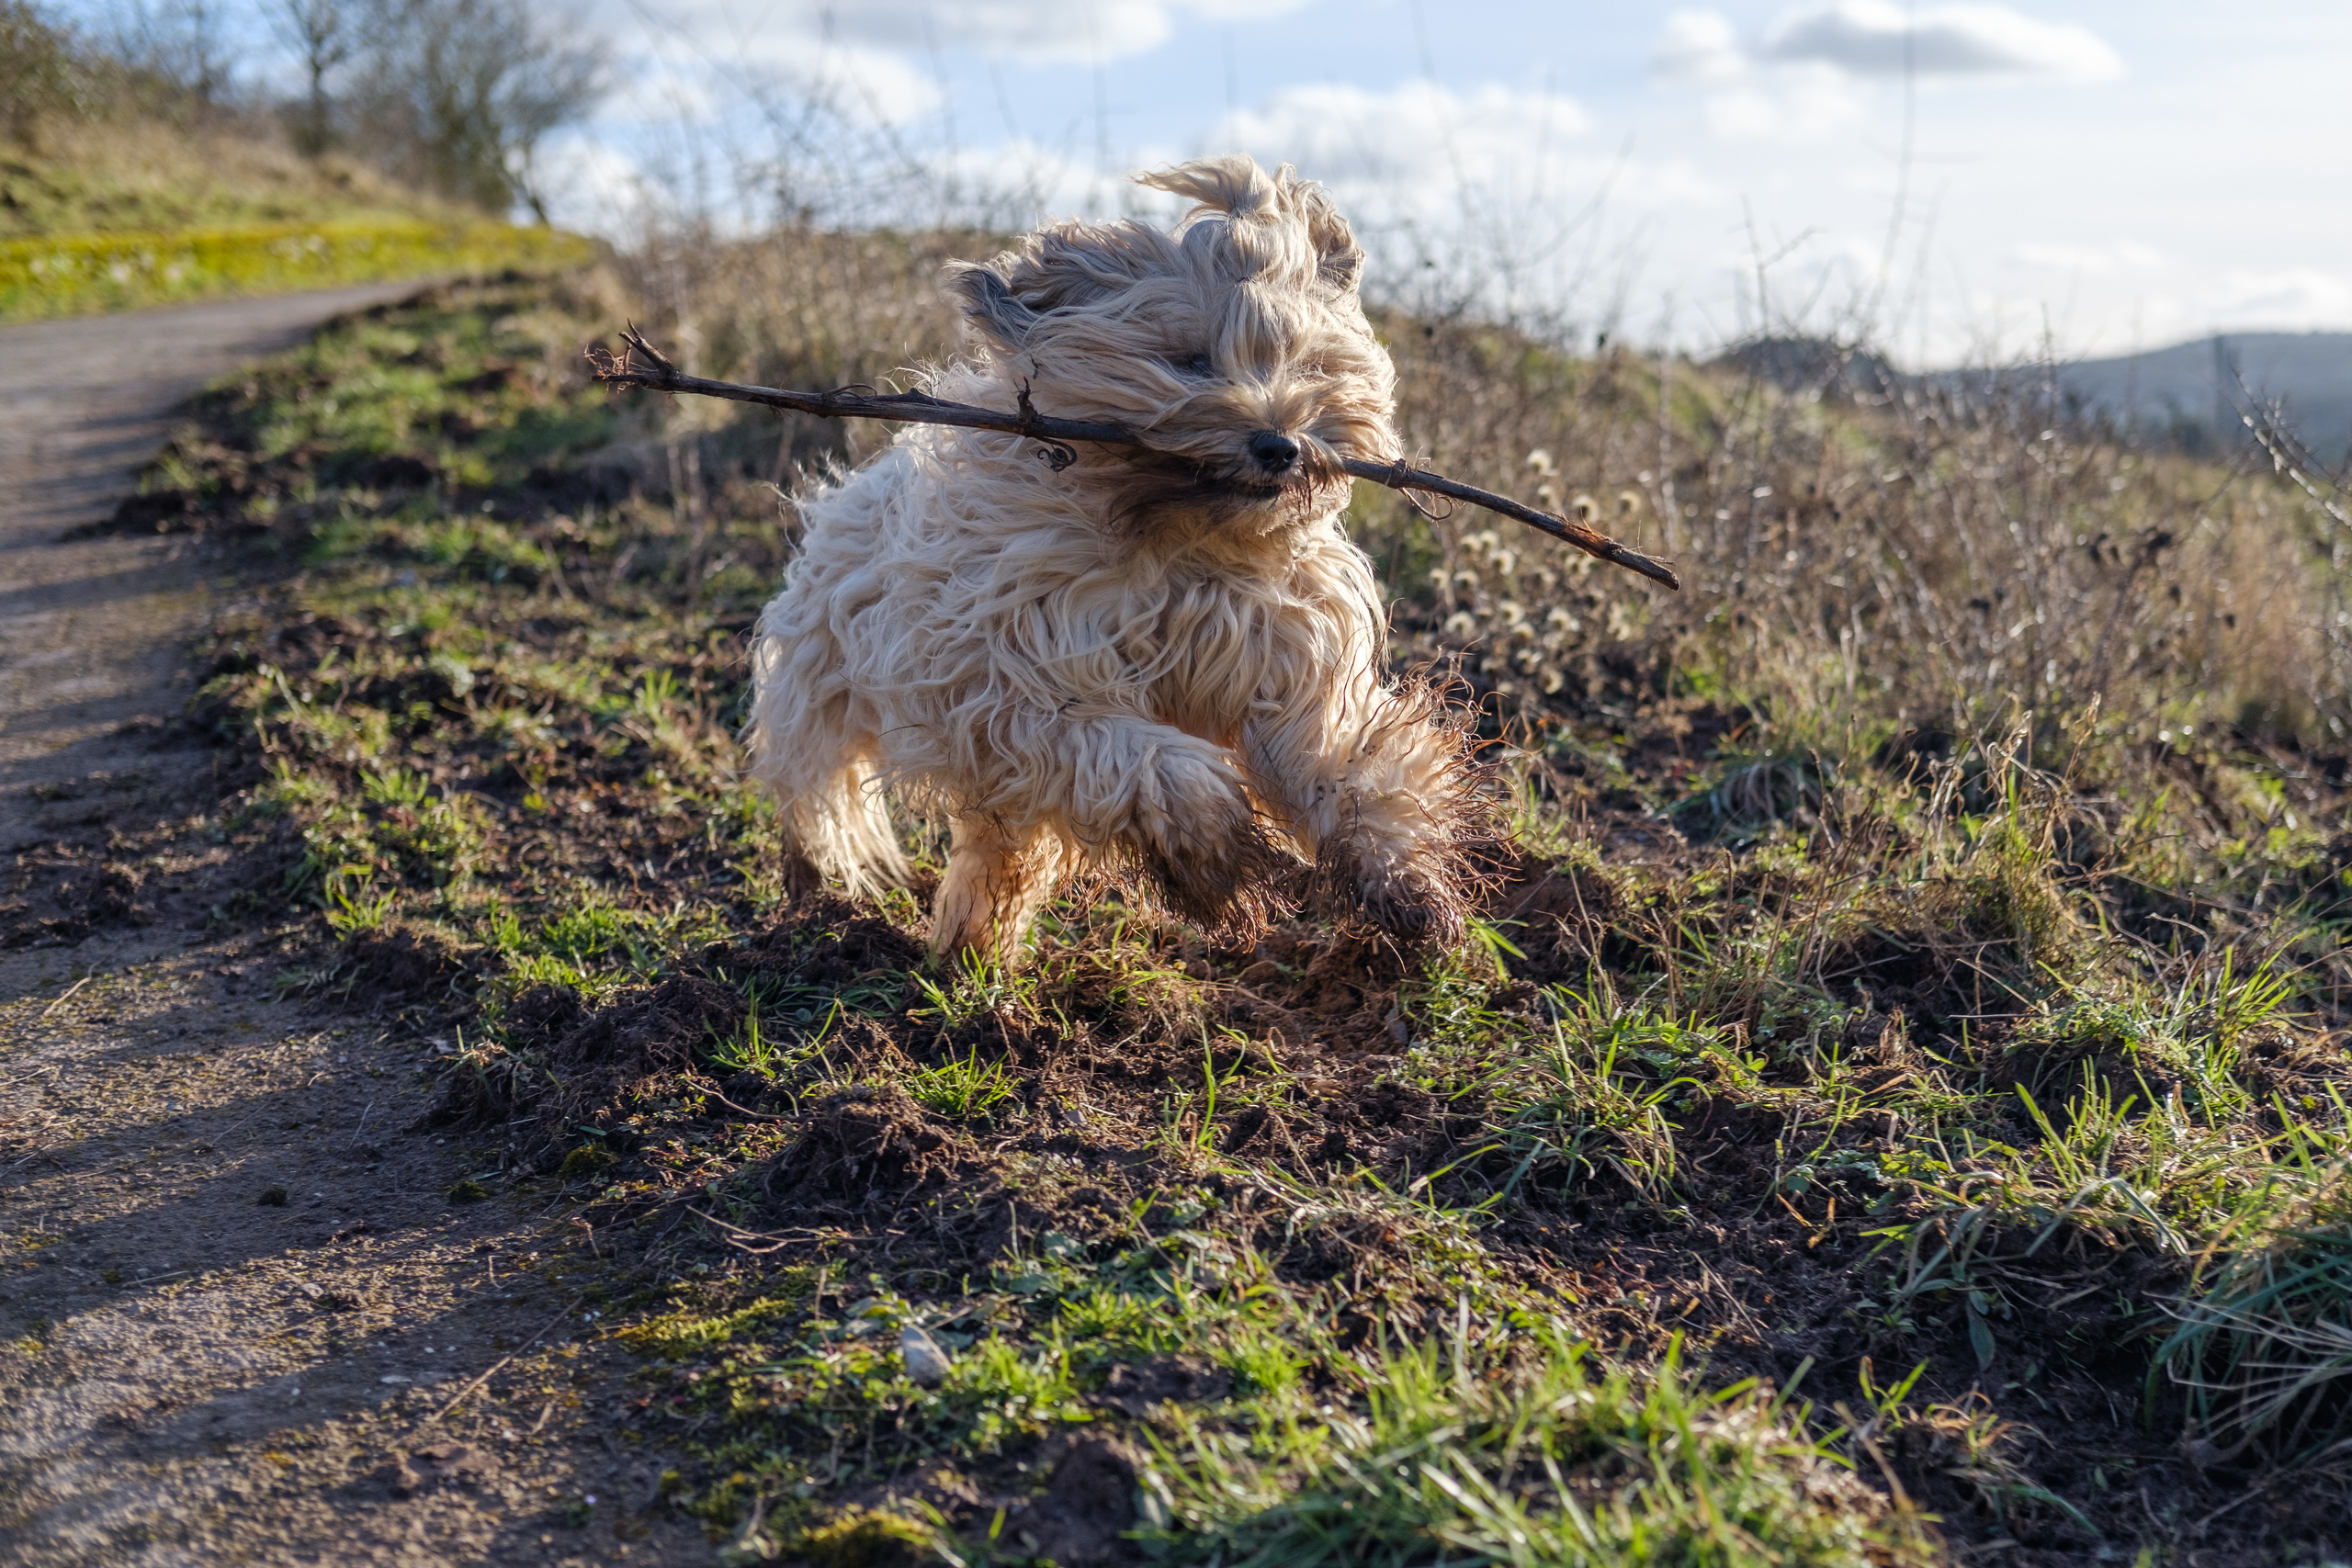 A Tibetan Terrier with a stick in its mouth running down a path